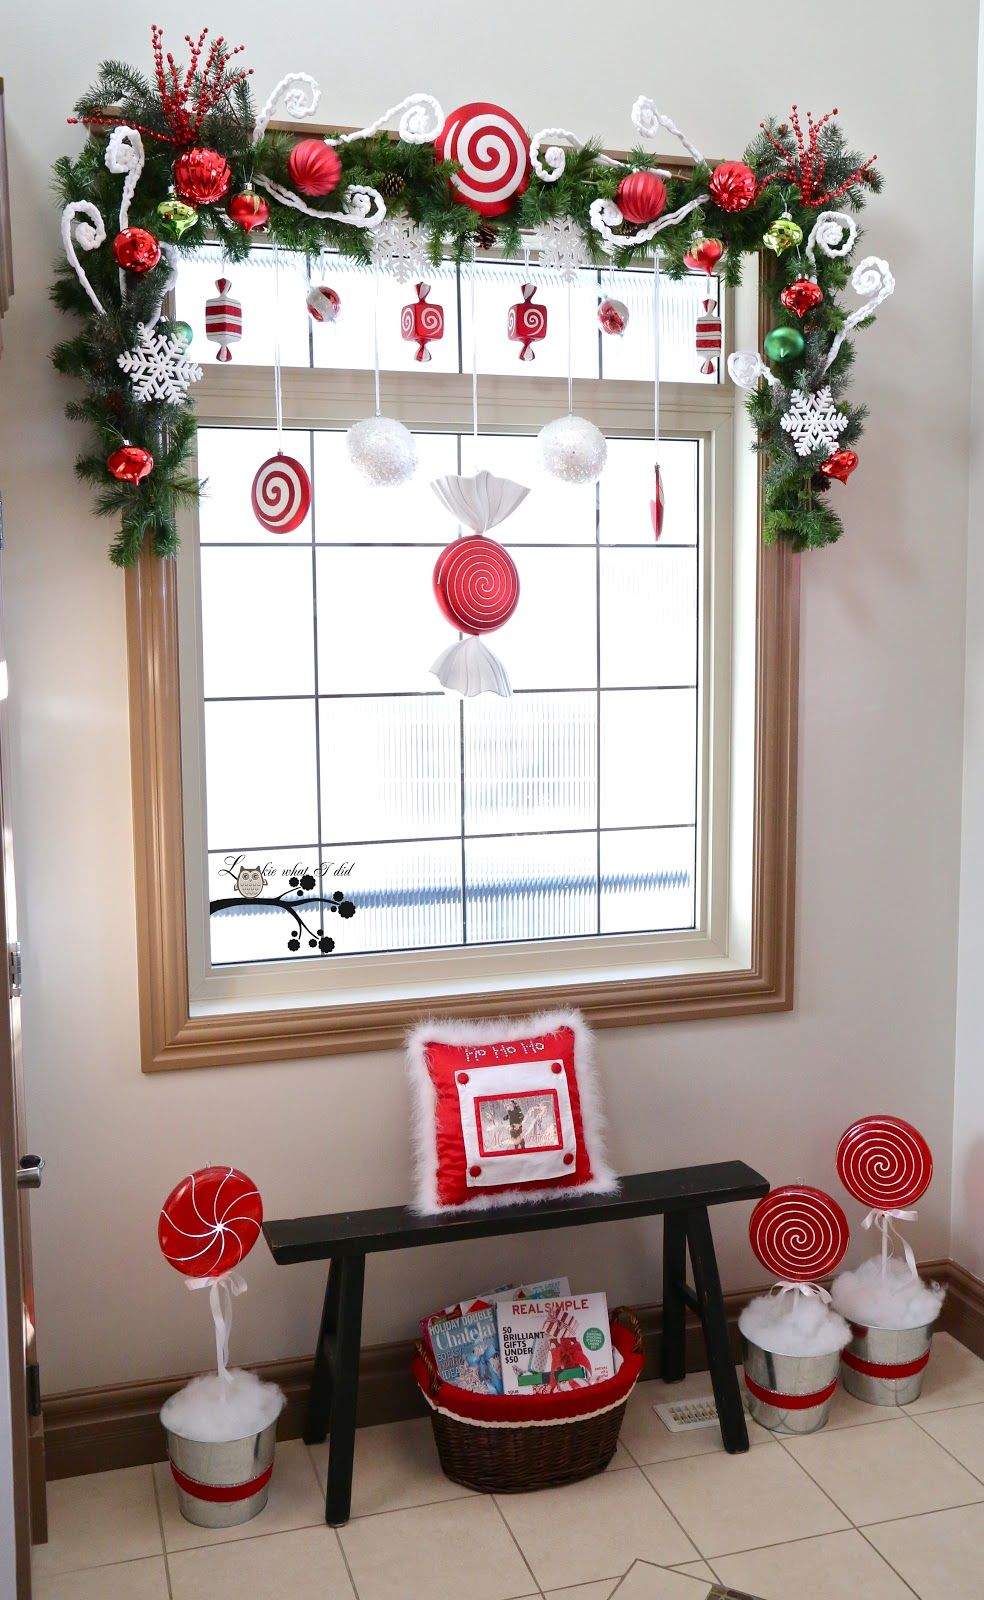 Add Cheer To Your Windows By Decorating Them For Christmas on country decorating with old windows, decorating ideas for living room, decorating ideas for bedrooms, decorating ideas for fireplaces, decorating above kitchen window ideas, decorating ideas for dining room, decorating ideas for doors, decorating ideas for vaulted ceilings, decorating ideas for mirrors, decorating ideas for decks, decorating ideas for floors,